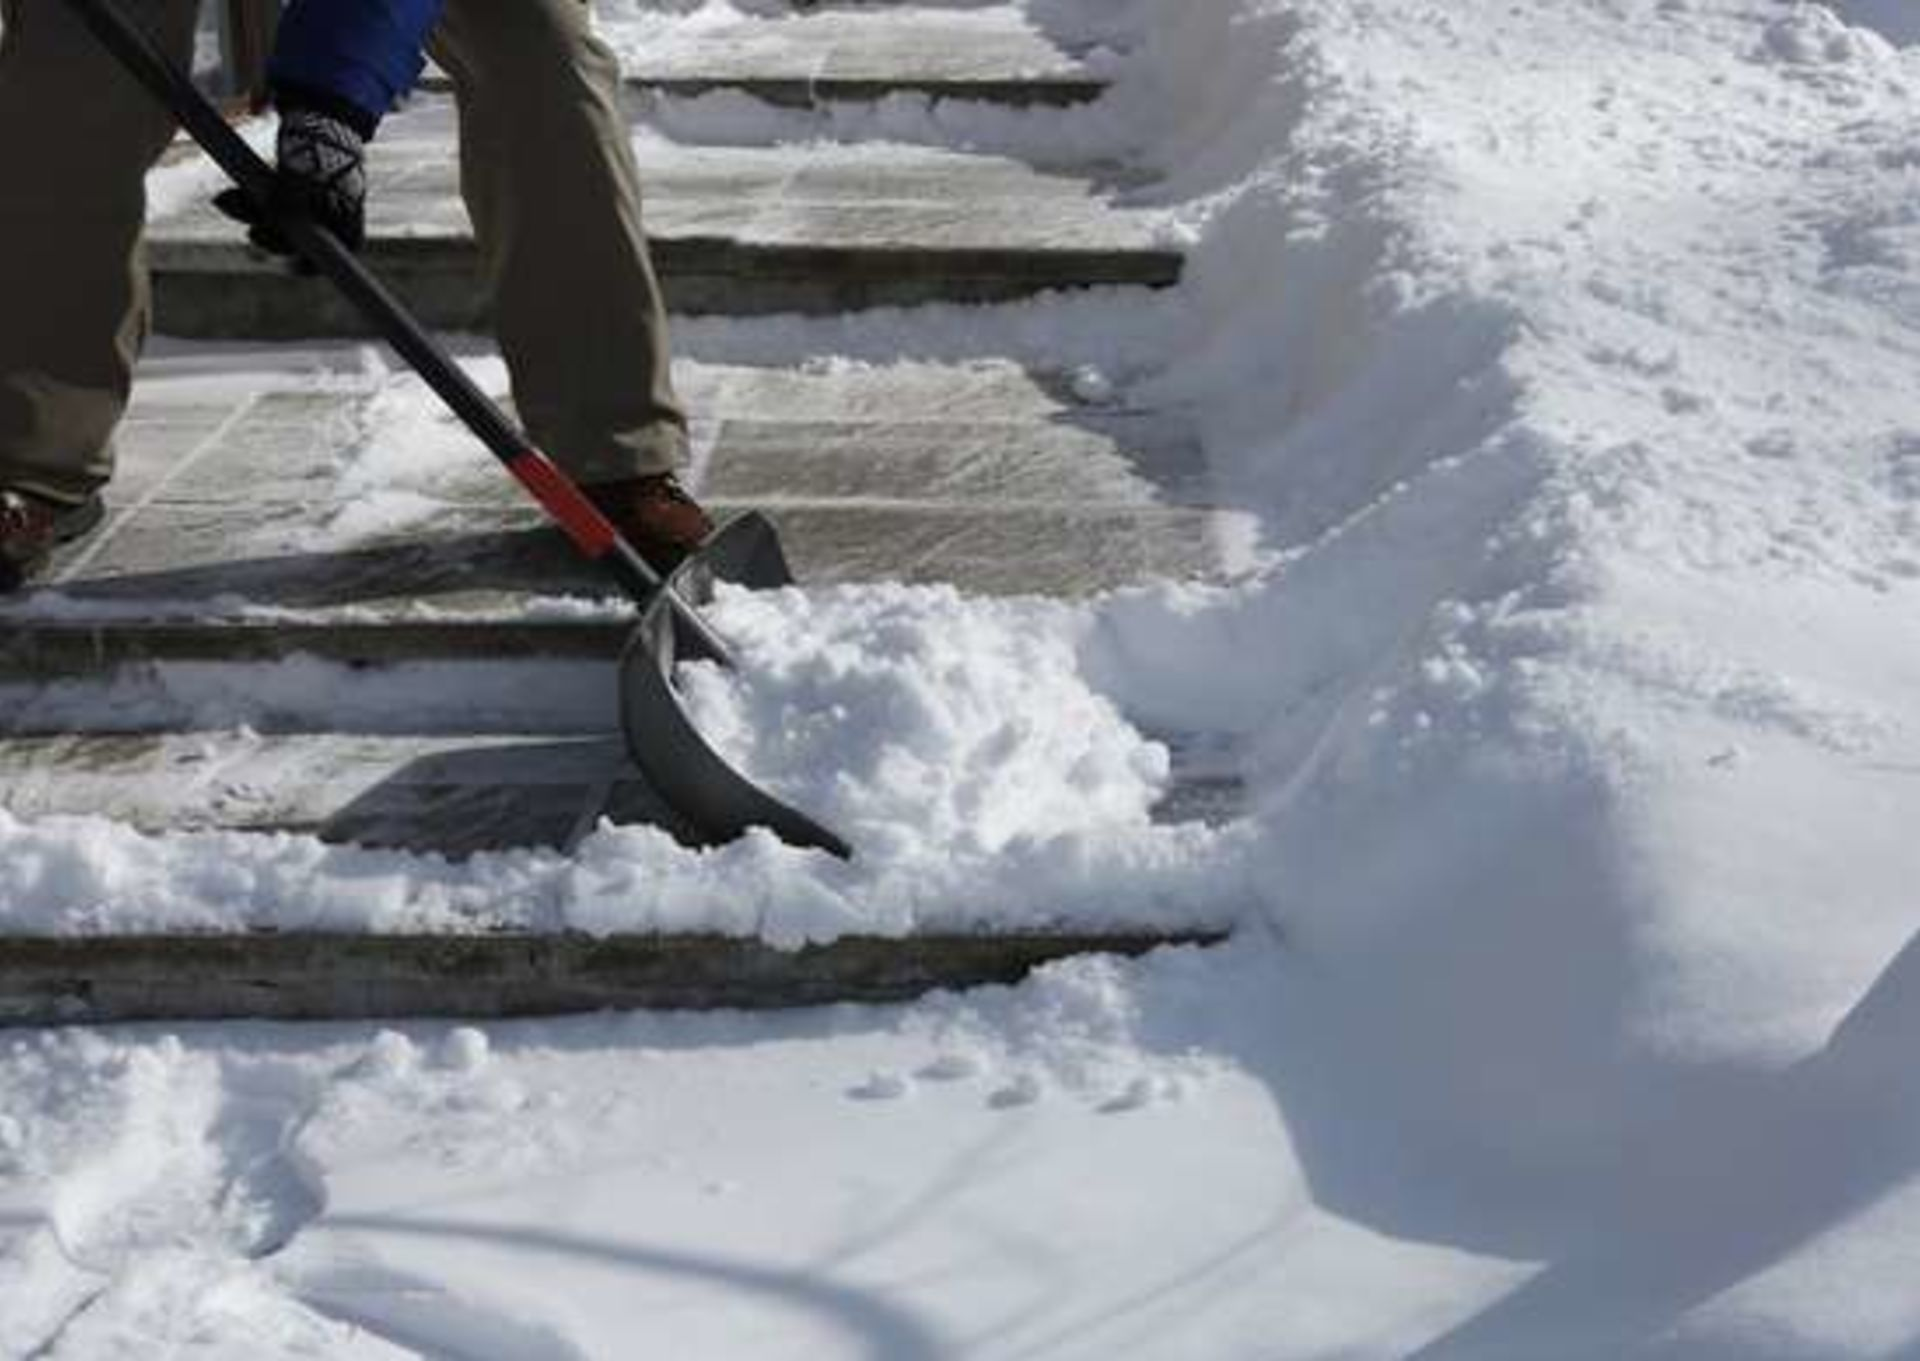 How to Safely Shovel Snow